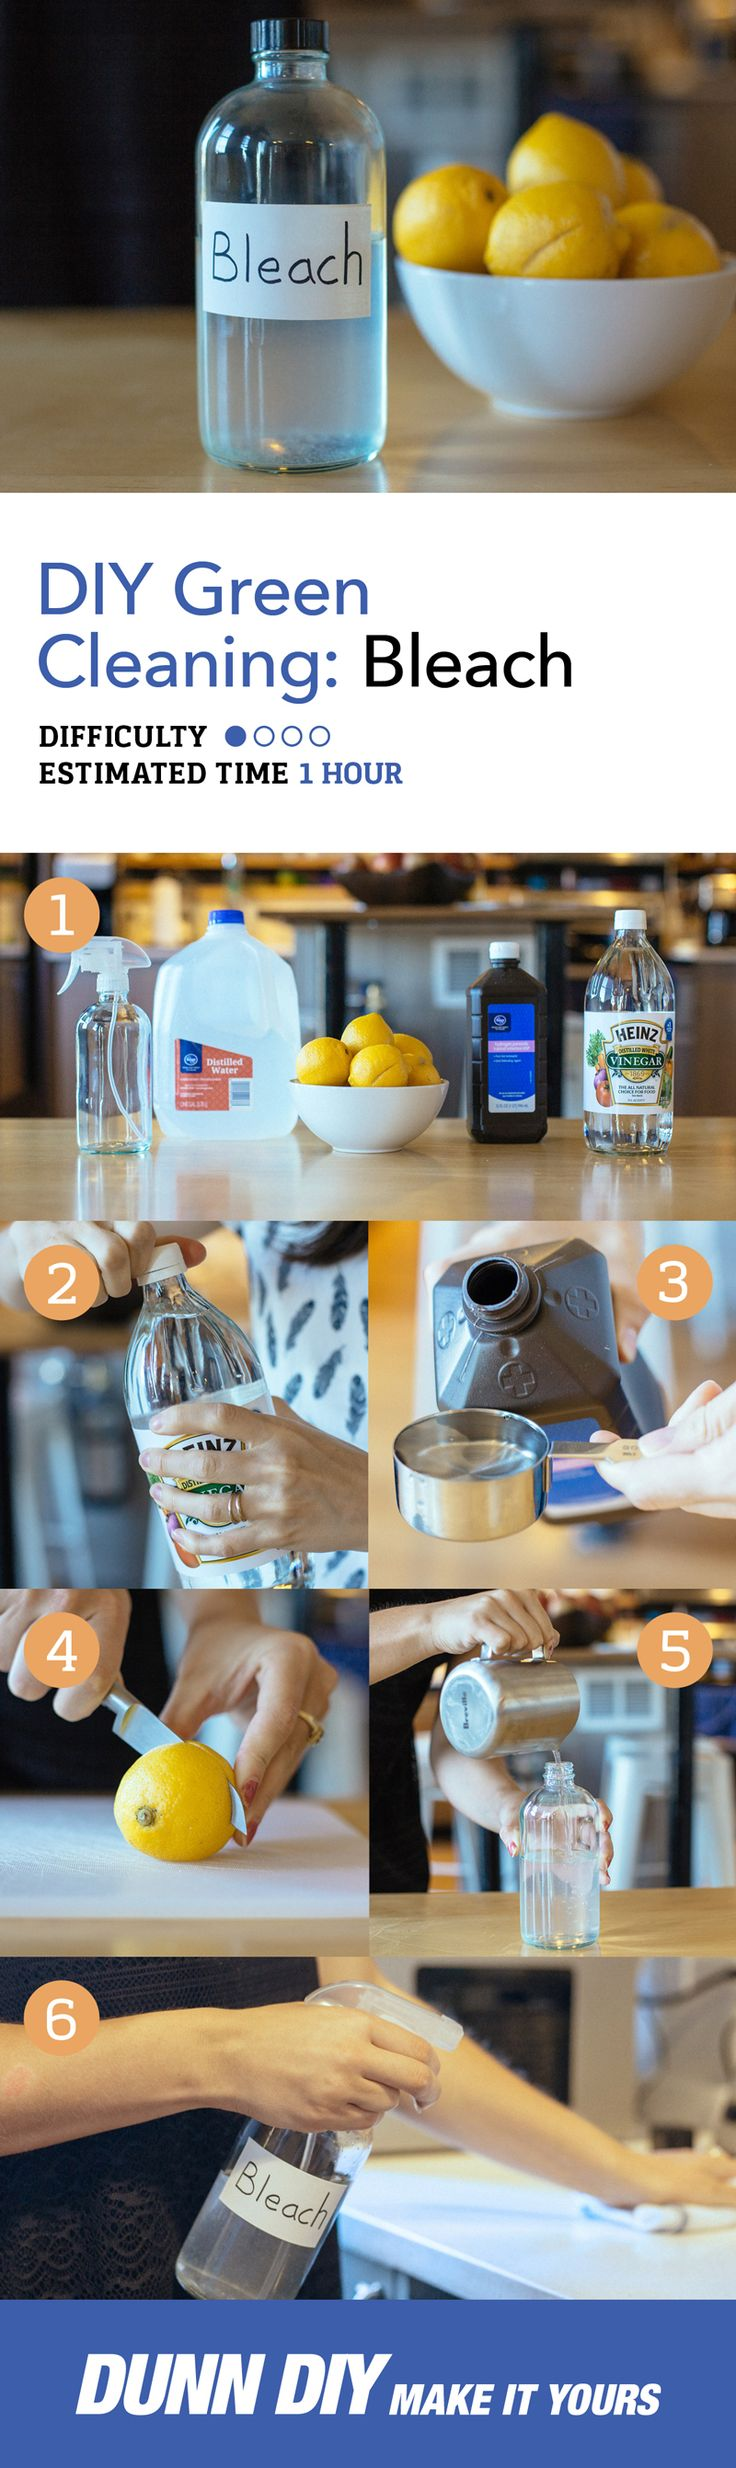 Green Cleaning | DIY Bleach This homemade bleach is non-toxic! It's perfect for removing stains, cleaning your tub and shower, and disinfecting countertops. And it smells amazing!